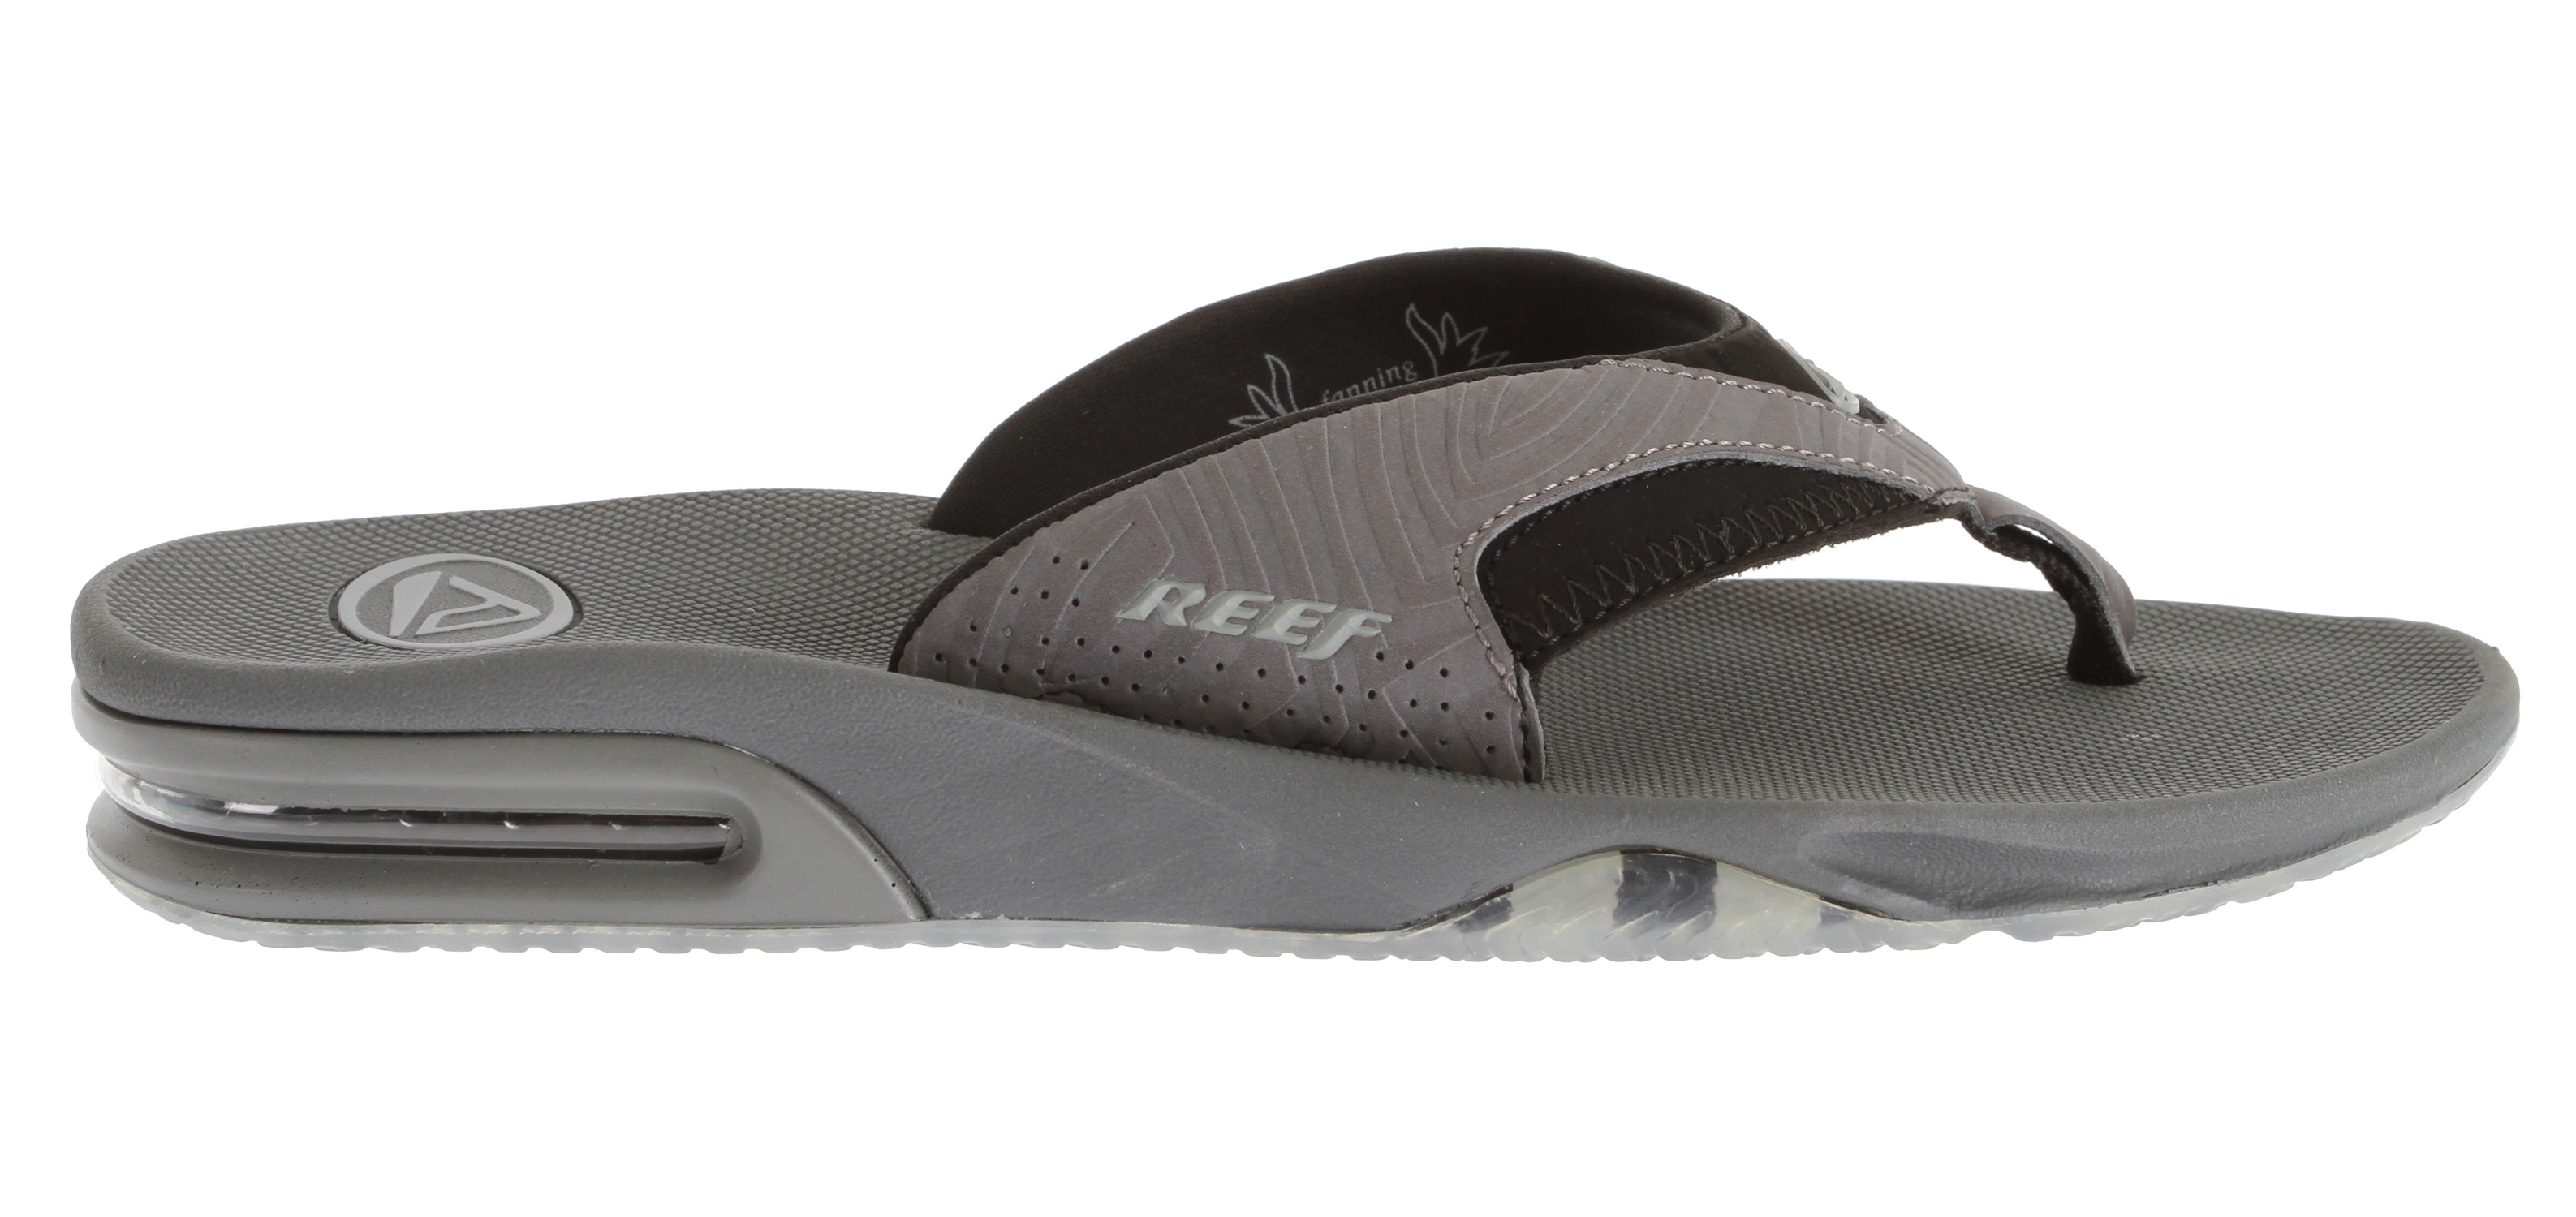 Surf Wearing the Fanning may not make you a pro like Mick Fanning, but these sandals are designed for a pro's adventurous lifestyle, with built in arch support for ultimate comfort, made water-friendly, and church key on the bottom of your sandal so your never unprepared for your journeys. Key Features of the Reef Fanning Print Sandals: Comfortable, water friendly synthetic nubuck upper Contoured compression molded eva footbed with anatomical arch support Full 360degrees heel airbag enclosed in soft polyurethane Thirst quenching technology (church key bottle opener on the outsole) Reef icon herringbone rubber outsole - $35.95